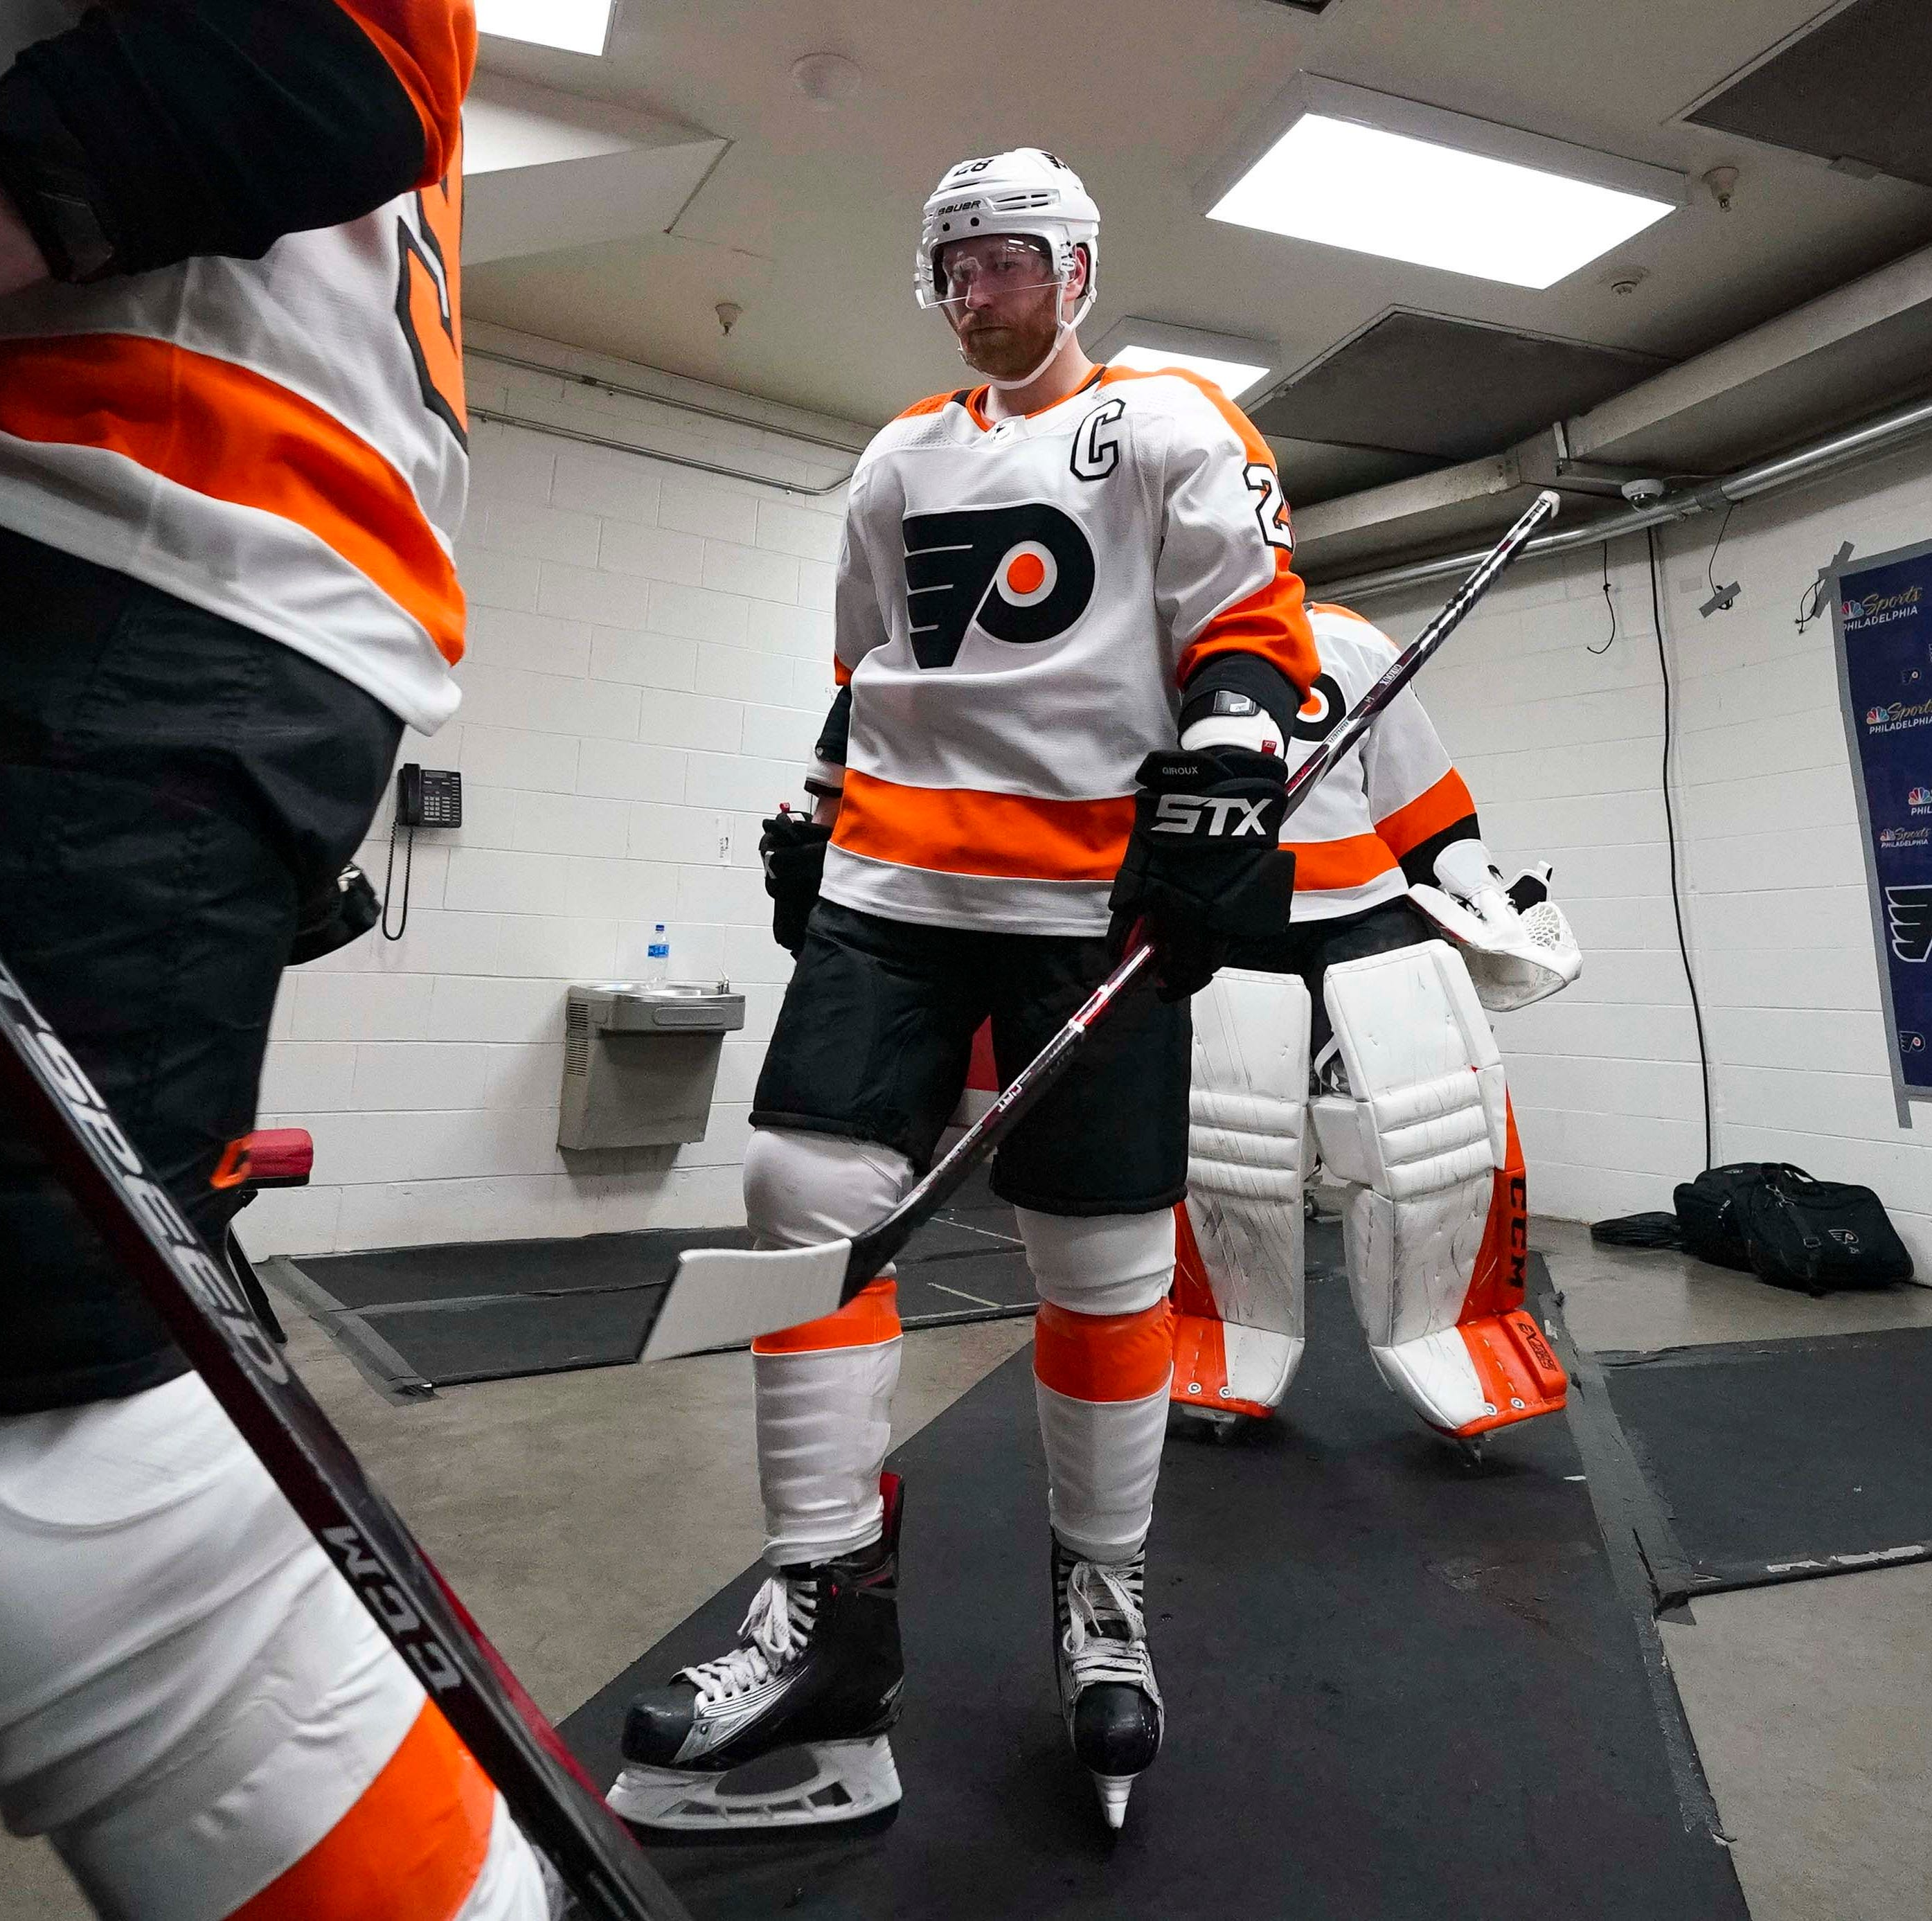 In final week of season, Flyers' focus may shift to offseason